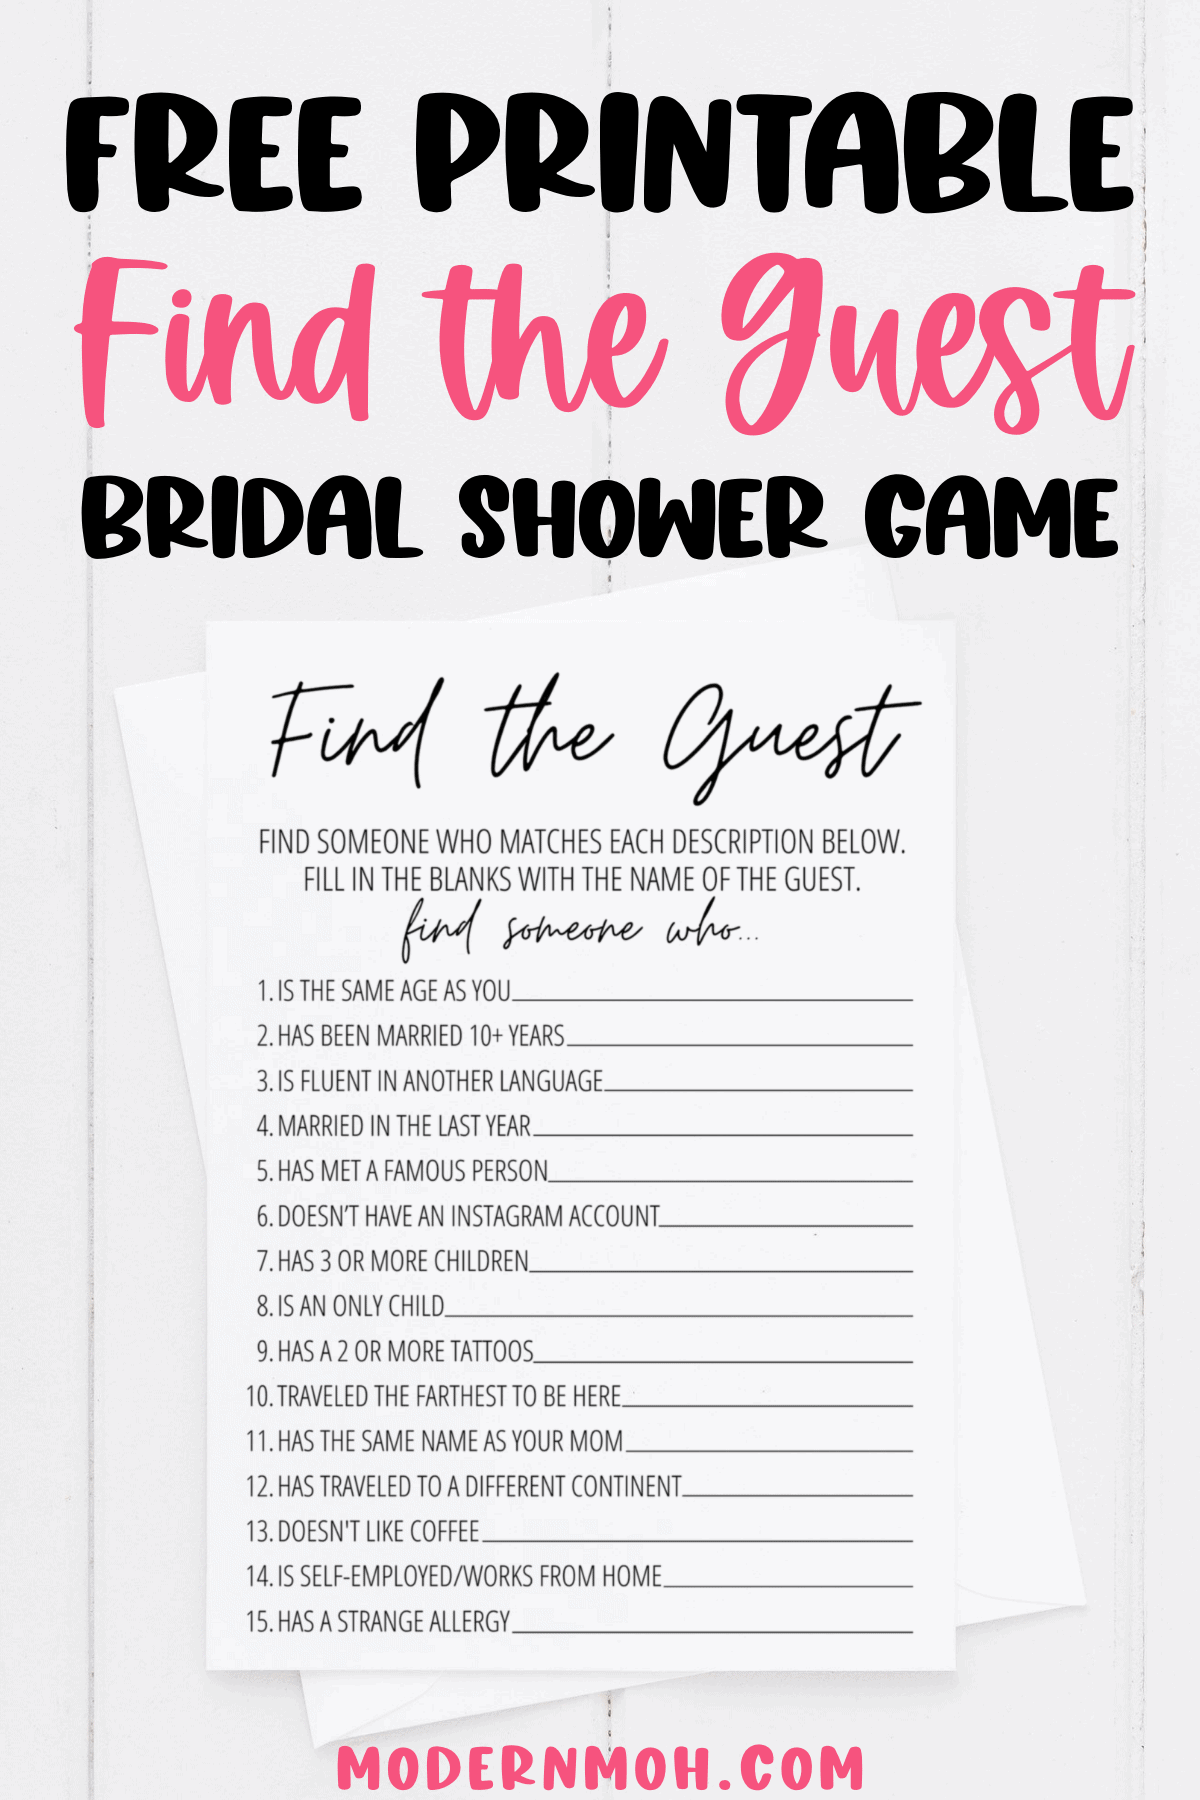 Find the Guest Bridal Shower Game Free Printable